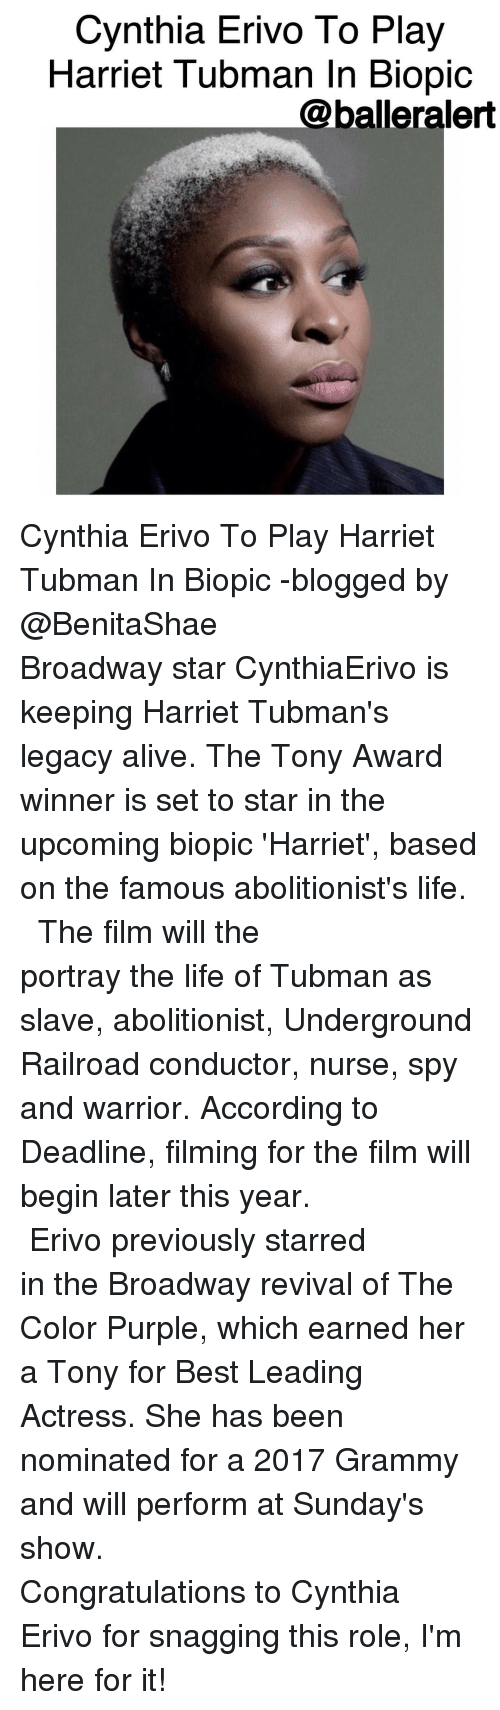 Grammys, Memes, and Harriet Tubman: Cynthia Erivo To Play  Harriet Tubman In Biopic  @balleralert Cynthia Erivo To Play Harriet Tubman In Biopic -blogged by @BenitaShae ⠀⠀⠀⠀⠀⠀⠀⠀⠀ ⠀⠀⠀⠀⠀⠀⠀⠀⠀ Broadway star CynthiaErivo is keeping Harriet Tubman's legacy alive. The Tony Award winner is set to star in the upcoming biopic 'Harriet', based on the famous abolitionist's life. ⠀⠀⠀⠀⠀⠀⠀⠀⠀ ⠀⠀⠀⠀⠀⠀⠀⠀⠀ The film will the portray the life of Tubman as slave, abolitionist, Underground Railroad conductor, nurse, spy and warrior. According to Deadline, filming for the film will begin later this year. ⠀⠀⠀⠀⠀⠀⠀⠀⠀ ⠀⠀⠀⠀⠀⠀⠀⠀⠀ Erivo previously starred in the Broadway revival of The Color Purple, which earned her a Tony for Best Leading Actress. She has been nominated for a 2017 Grammy and will perform at Sunday's show. ⠀⠀⠀⠀⠀⠀⠀⠀⠀ ⠀⠀⠀⠀⠀⠀⠀⠀⠀ Congratulations to Cynthia Erivo for snagging this role, I'm here for it!